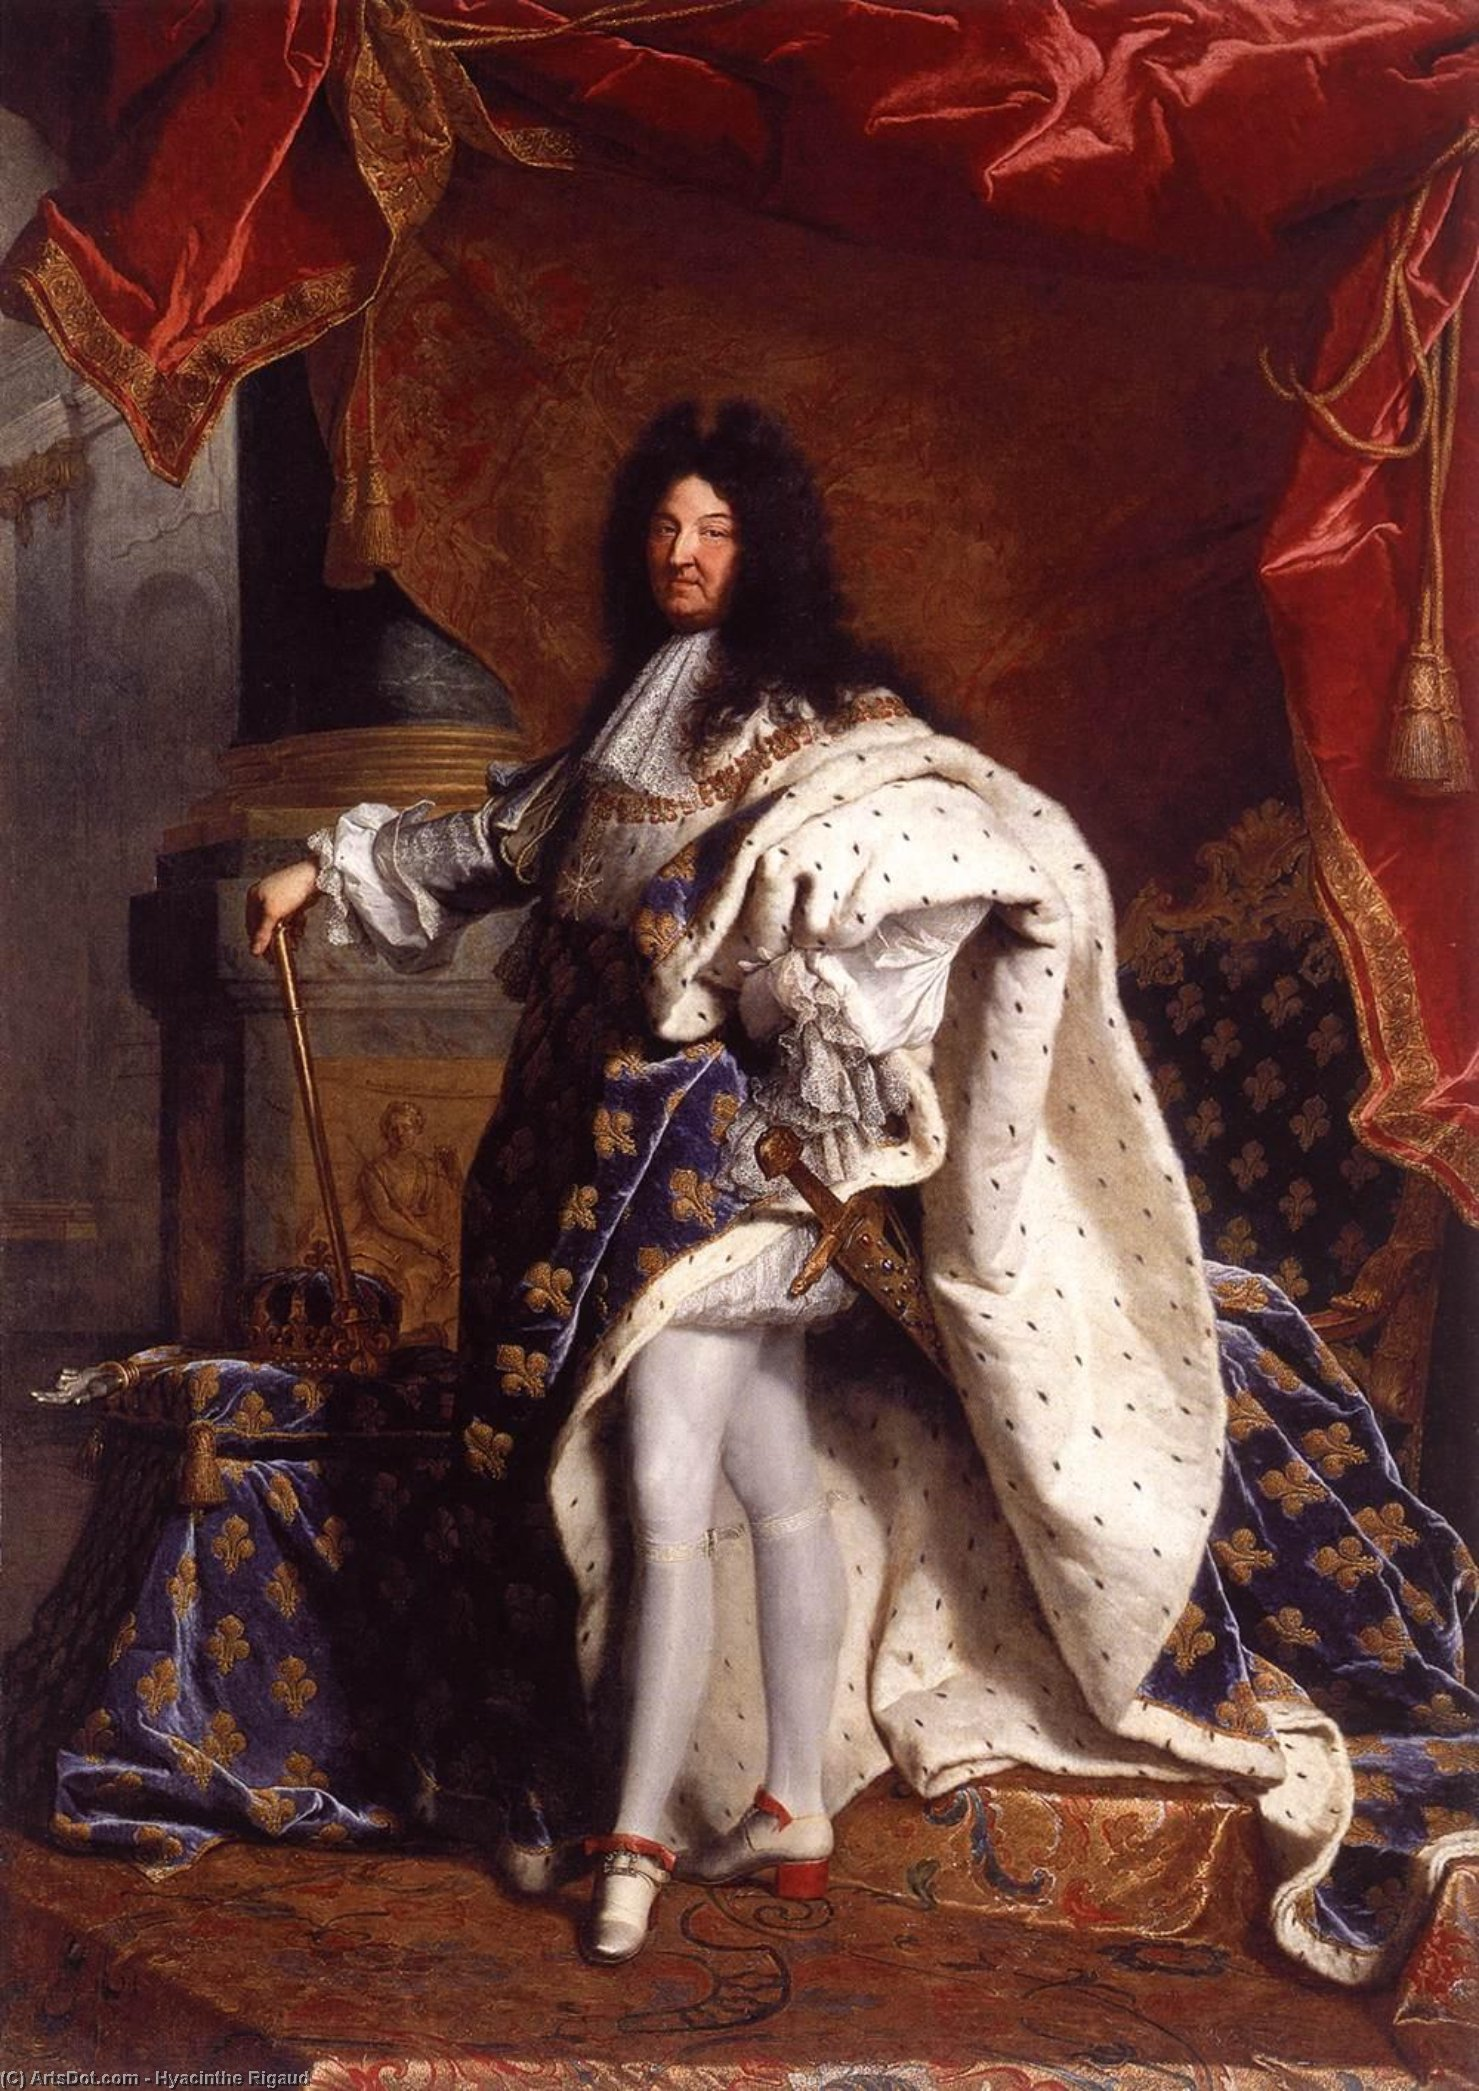 Wikioo.org - The Encyclopedia of Fine Arts - Painting, Artwork by Hyacinthe Rigaud - Portrait of Louis XIV